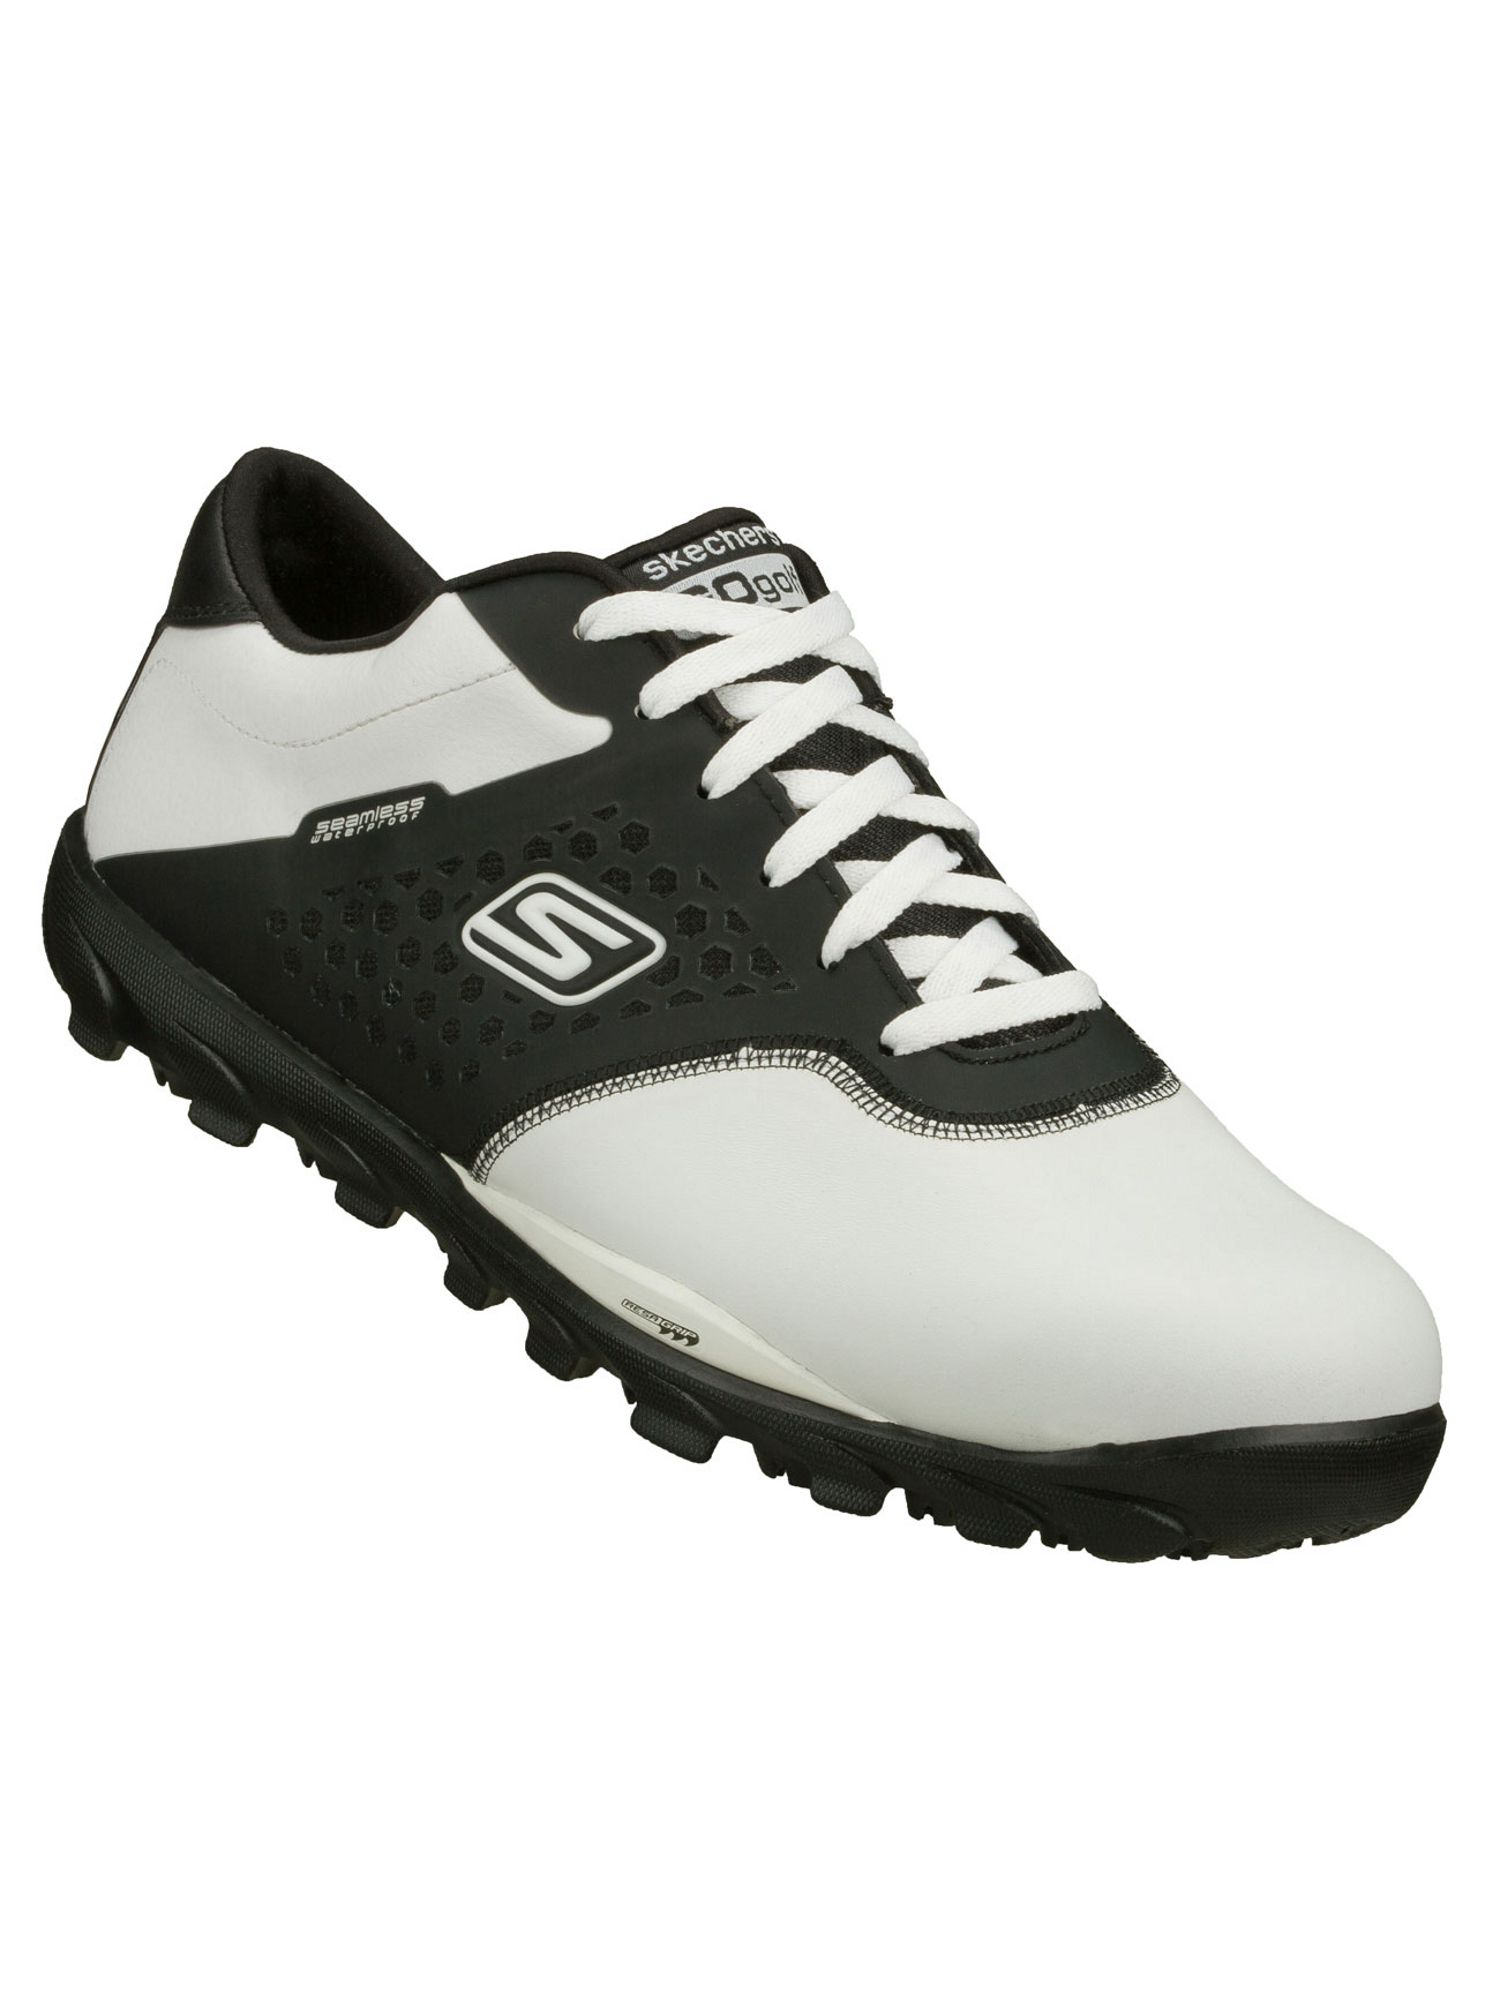 Go golf shoes